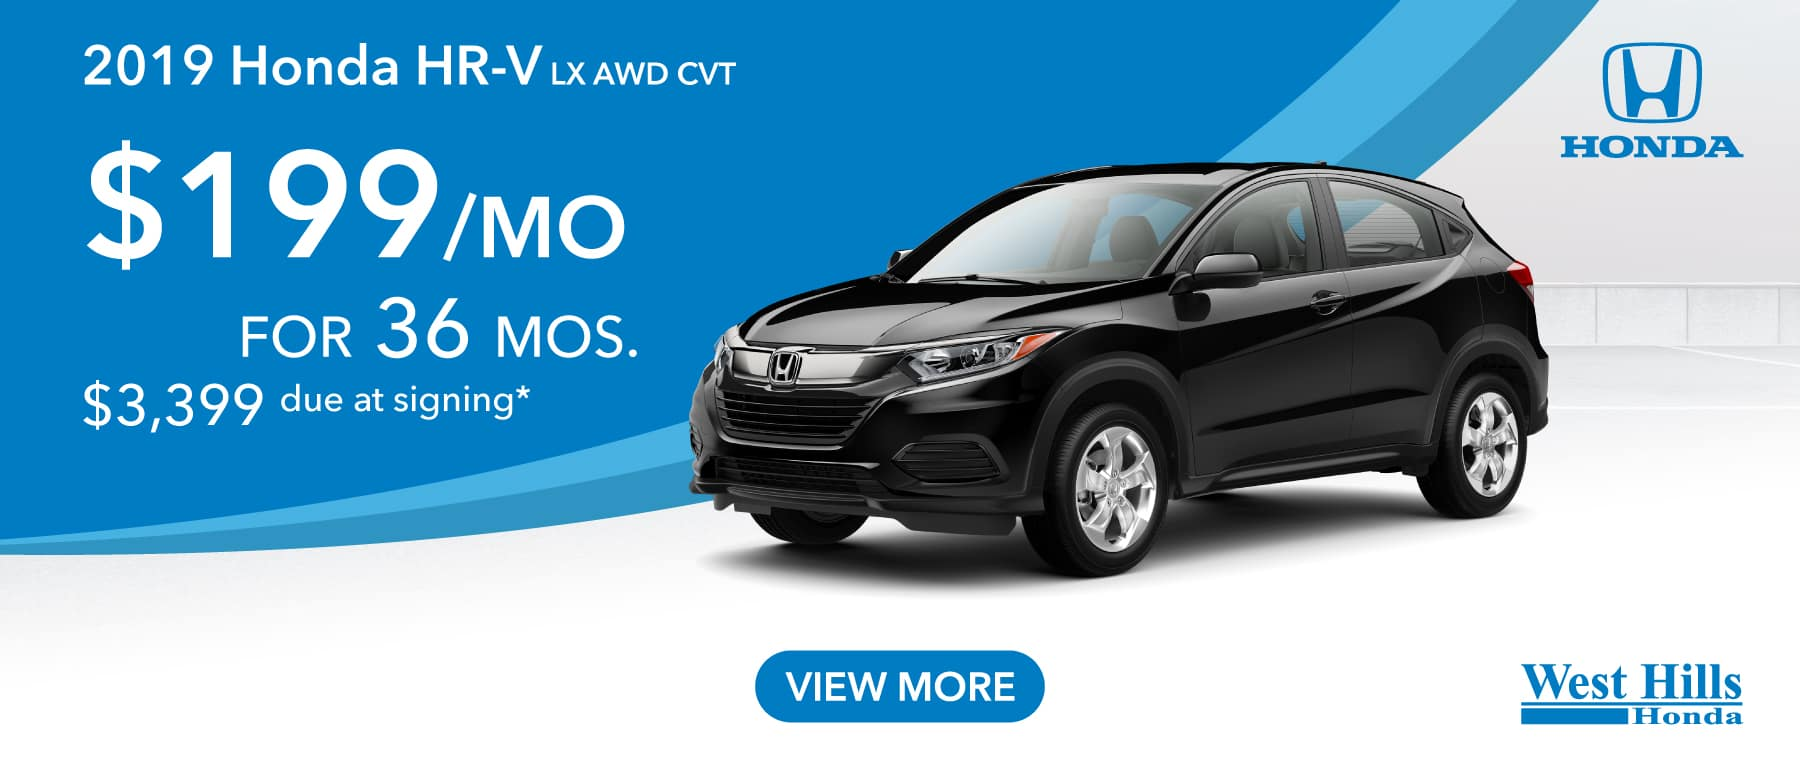 2019 Honda HR-V LX AWD CVT (featured vehicle) $199/mo. for 36 mos. $3,399 due at signing*    *Valid on 2019 Honda HR-V LX AWD CVT. $199 per mo. for 36 months. Lease with $3,399 due at signing; includes a $595 acquisition fee. Valid on VIN: 3CZRU6H35KG722022, 3CZRU6H31KM720558, 3CZRU6H34KM720604. MSRP $22,965. No Security deposit required. Subject to credit approval. 36 monthly payments required. Not all lessees will qualify for lowest payment through participating lender. Residency restrictions apply. Lessee responsible for maintenance, excessive wear/tear and mileage over 12,000 miles per year at $0.15/mile. Option to purchase at lease end. Excludes state and local taxes, tags, registration and title, insurance and dealer charges. A negotiable dealer documentary service fee of up to $150 may be added to the sale price or capitalized cost. Offer expires 7/8/2019.